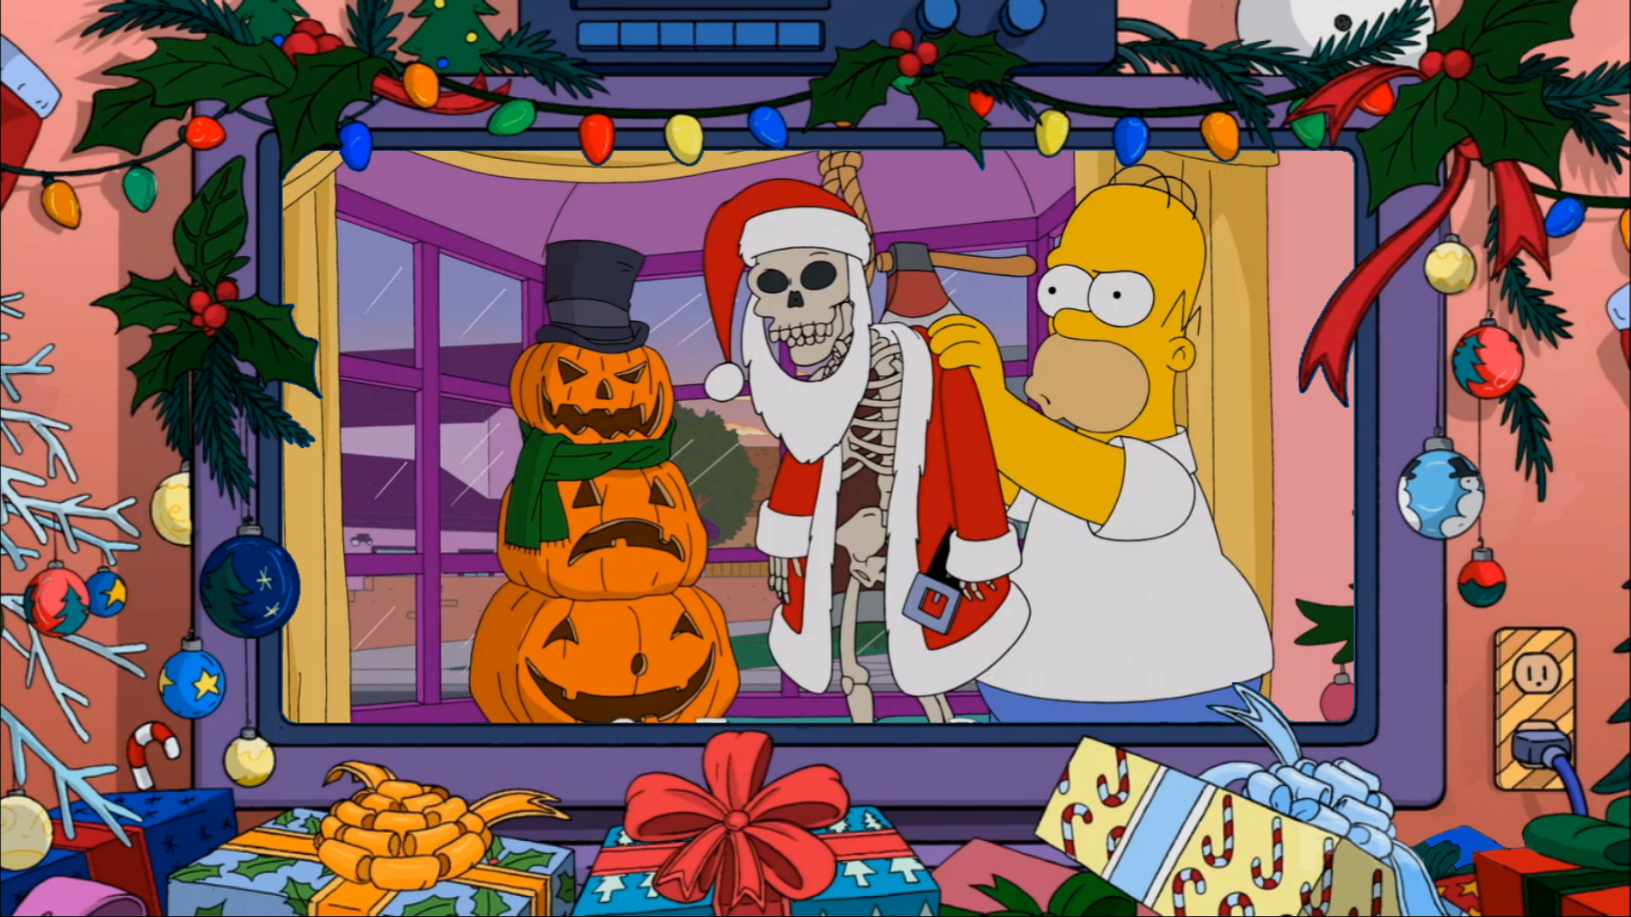 Simpsons Christmas Episodes.Where Are You Christmas The Simpsons Tapped Out Addictsall